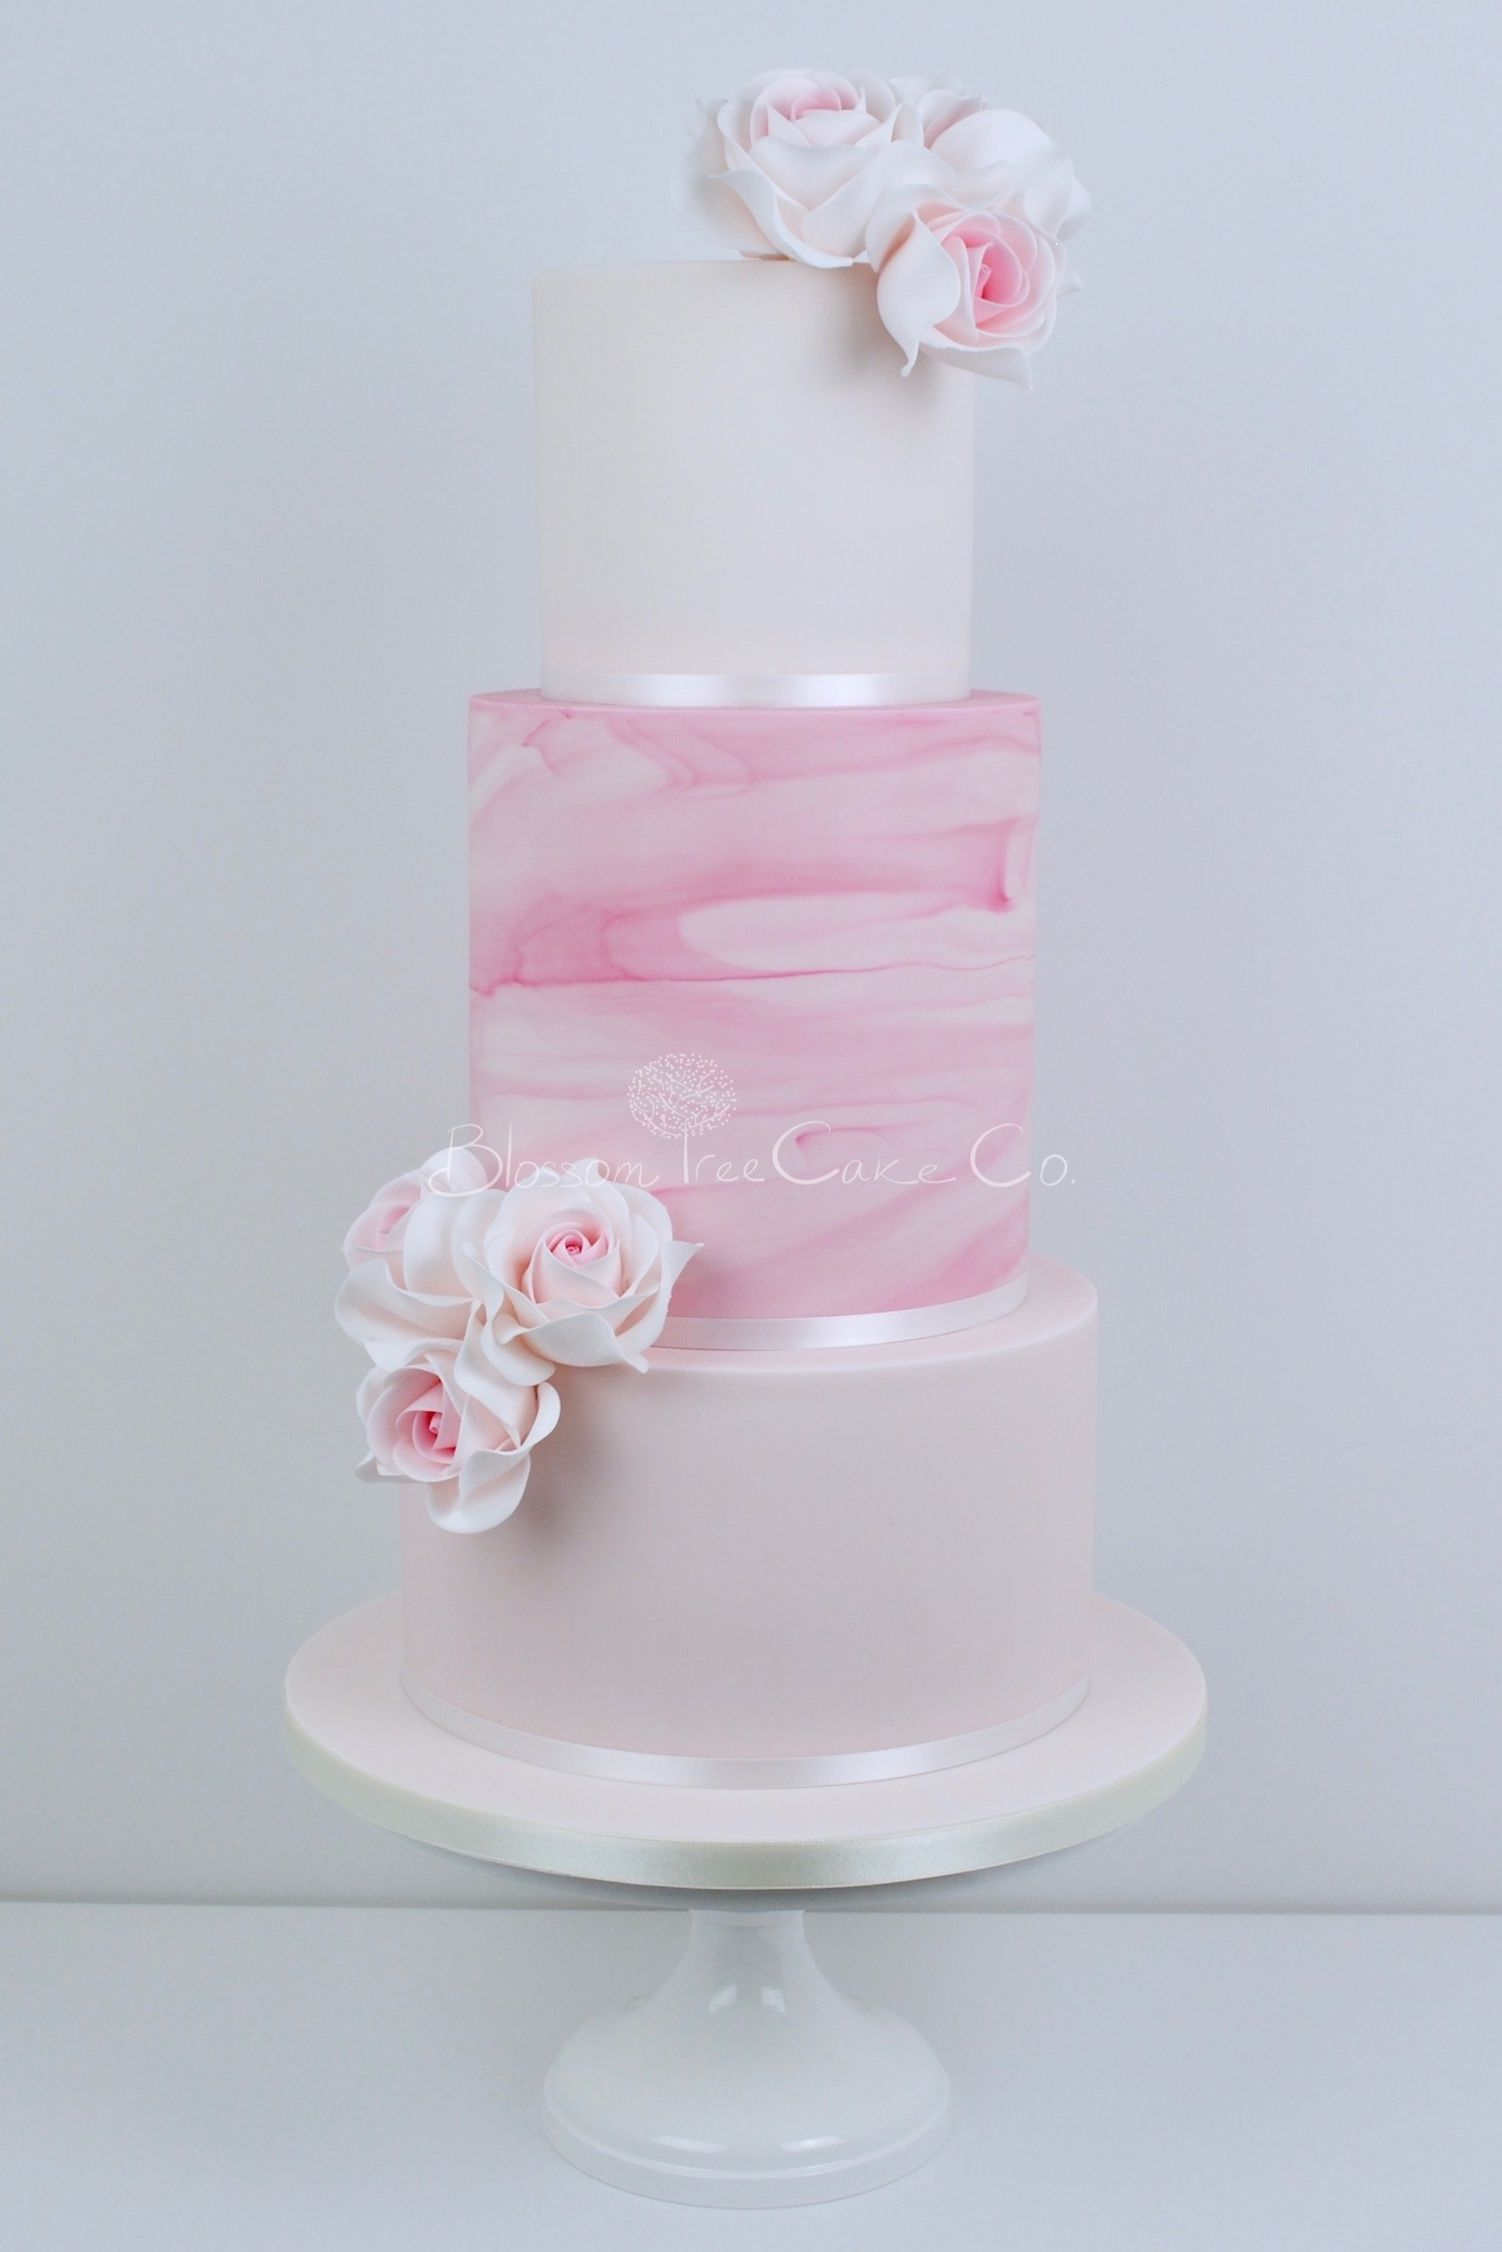 Beautiful Swirls Of Pink Marble Icing And Delicate Roses For A Romantic Dream Wedding Cake